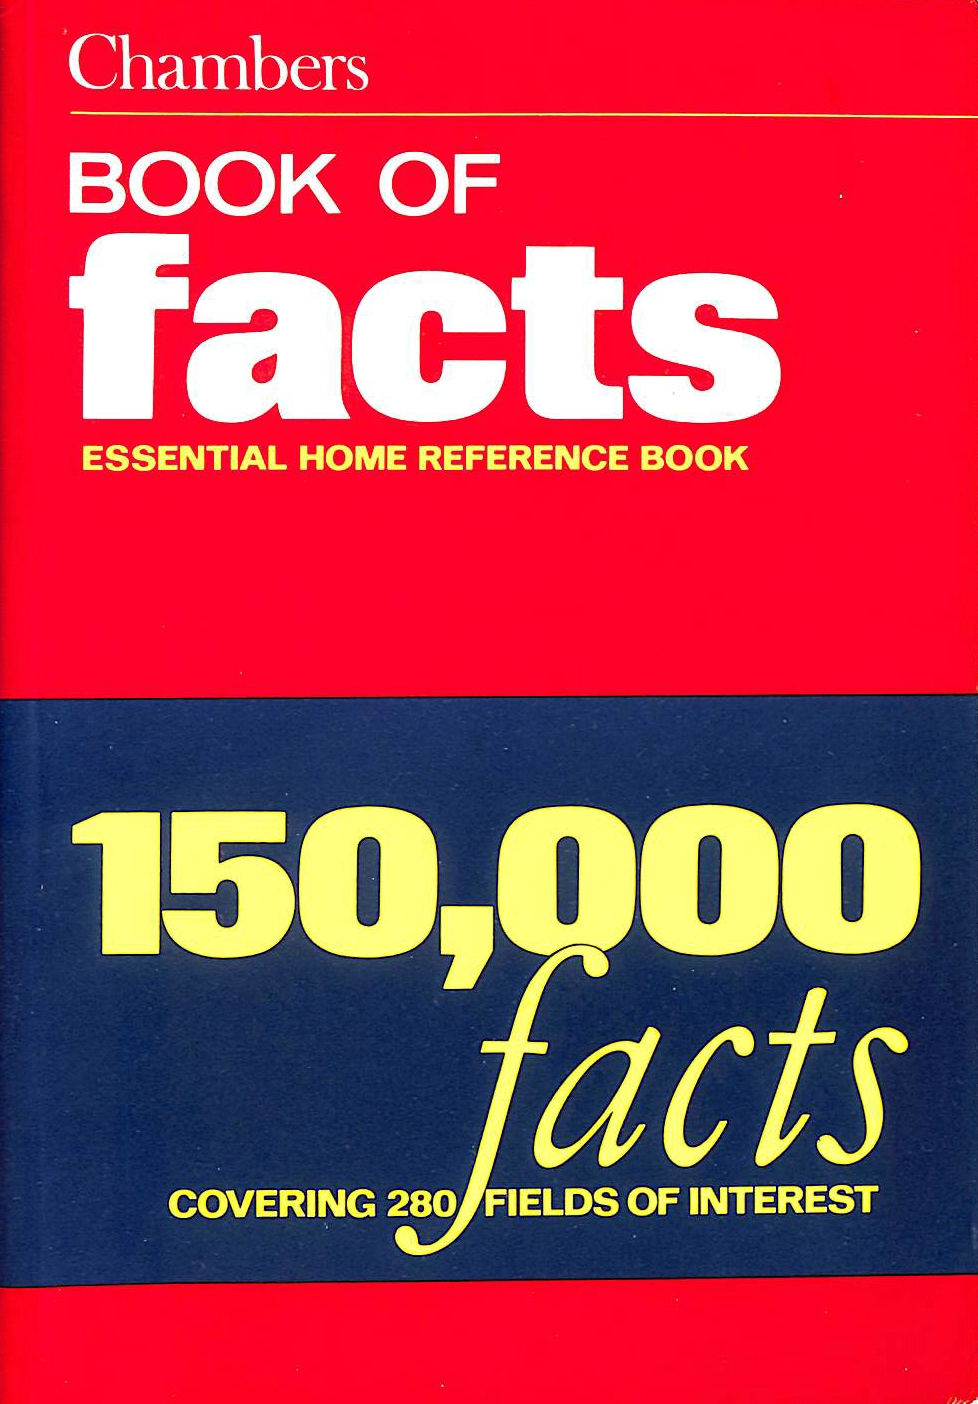 Image for Chambers' Book of Facts